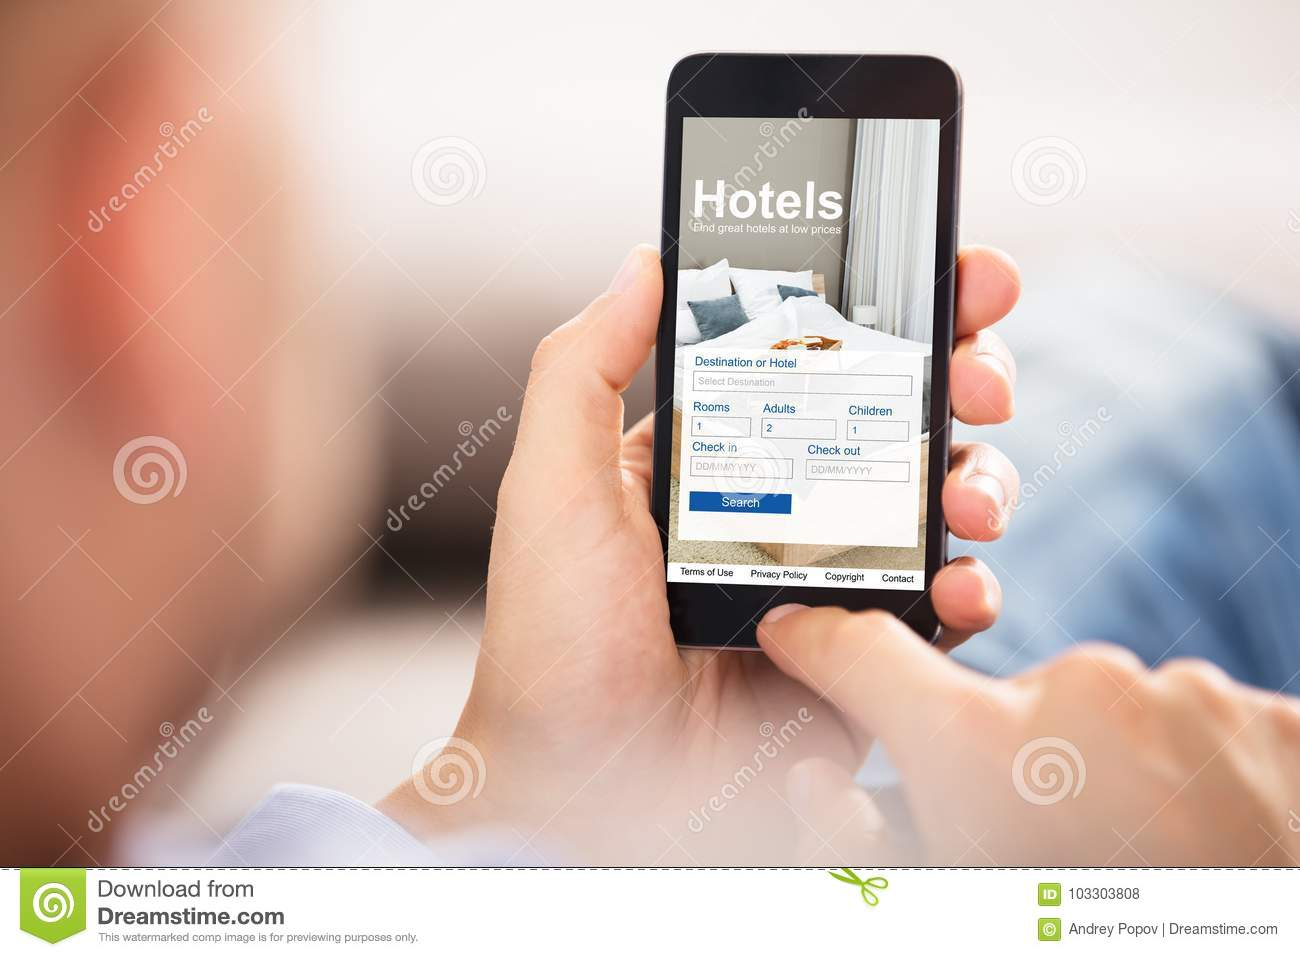 Hoteles de Person Searching Online Low Prices